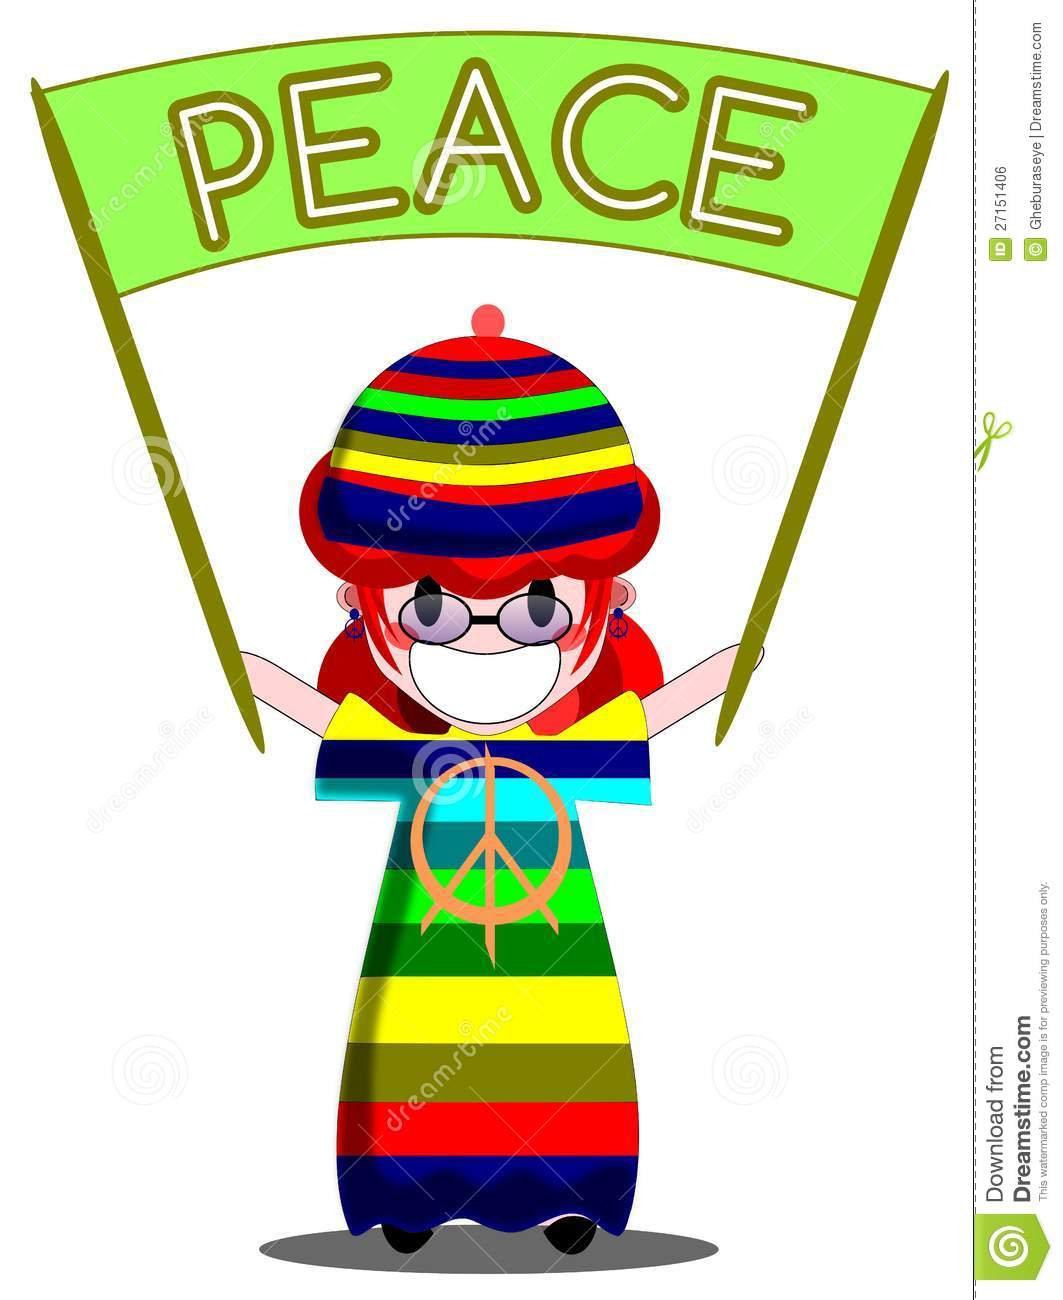 Pacifist Girl Royalty Free Stock Image.